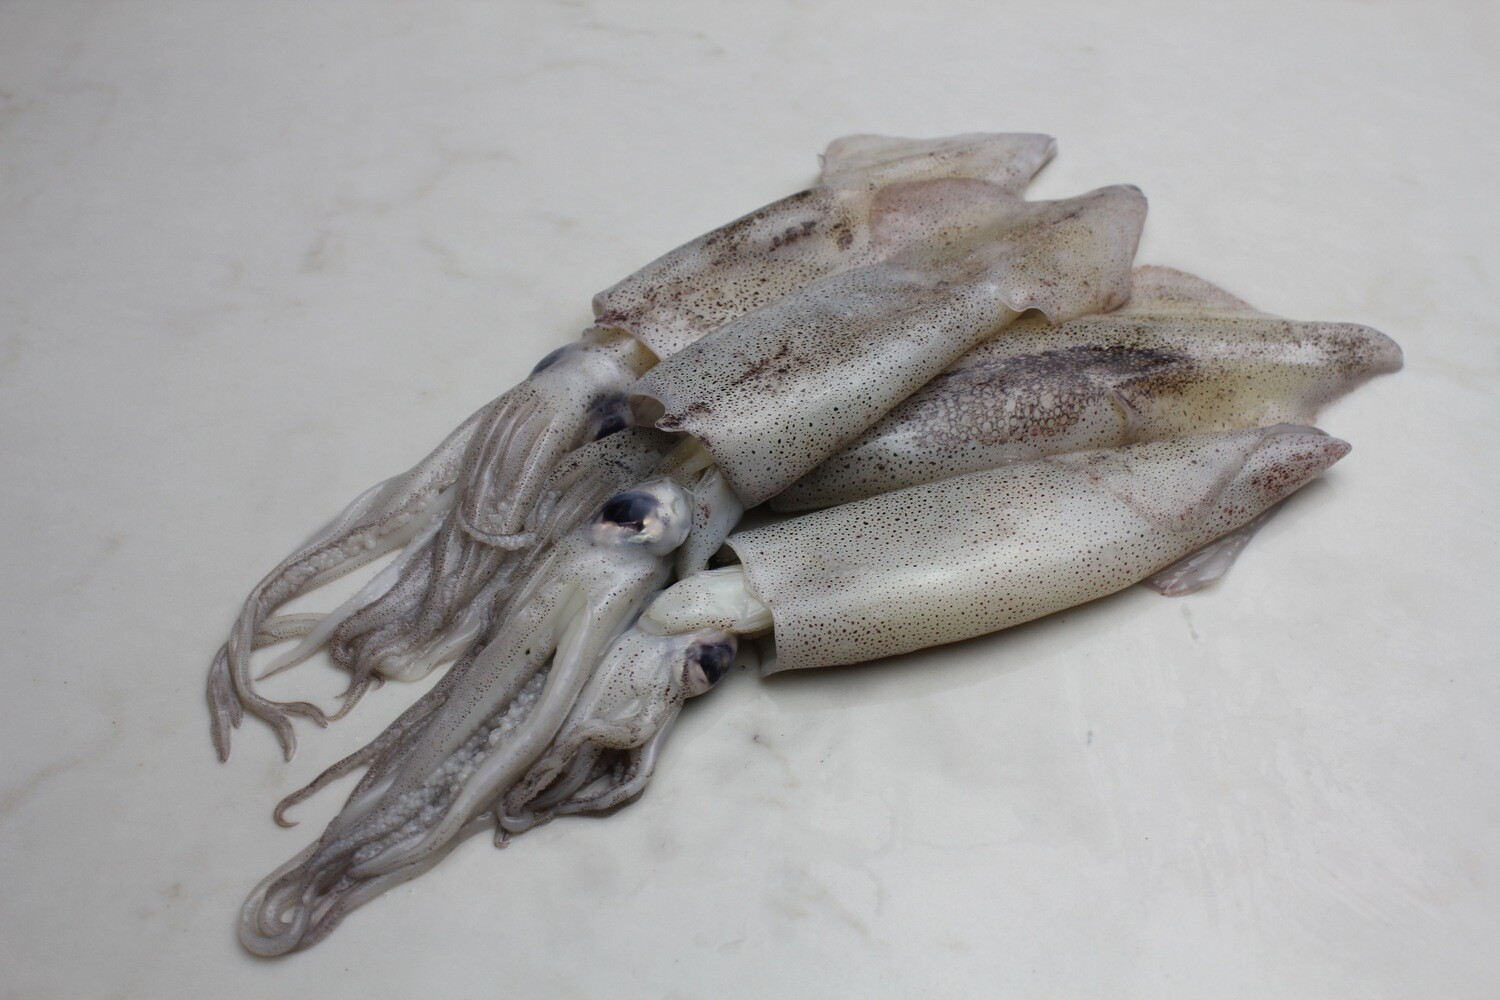 FROZEN & VAC SEALED Whole Market Squid (2.0 lbs)